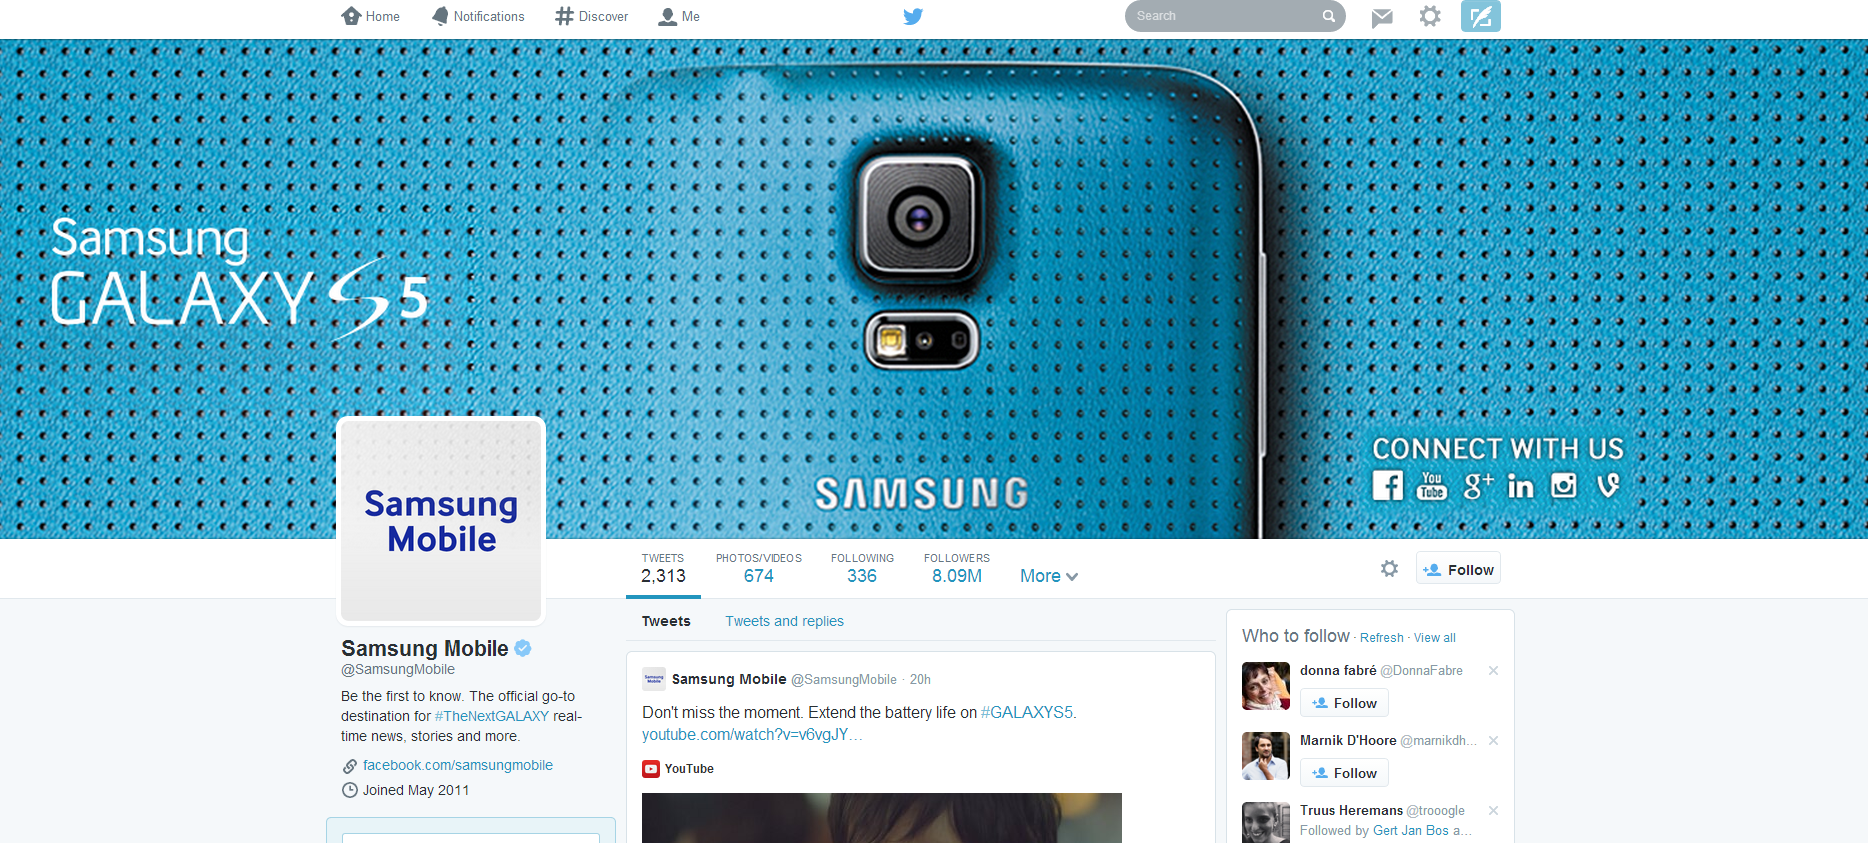 Twitter Header Photo of Samsung Mobile